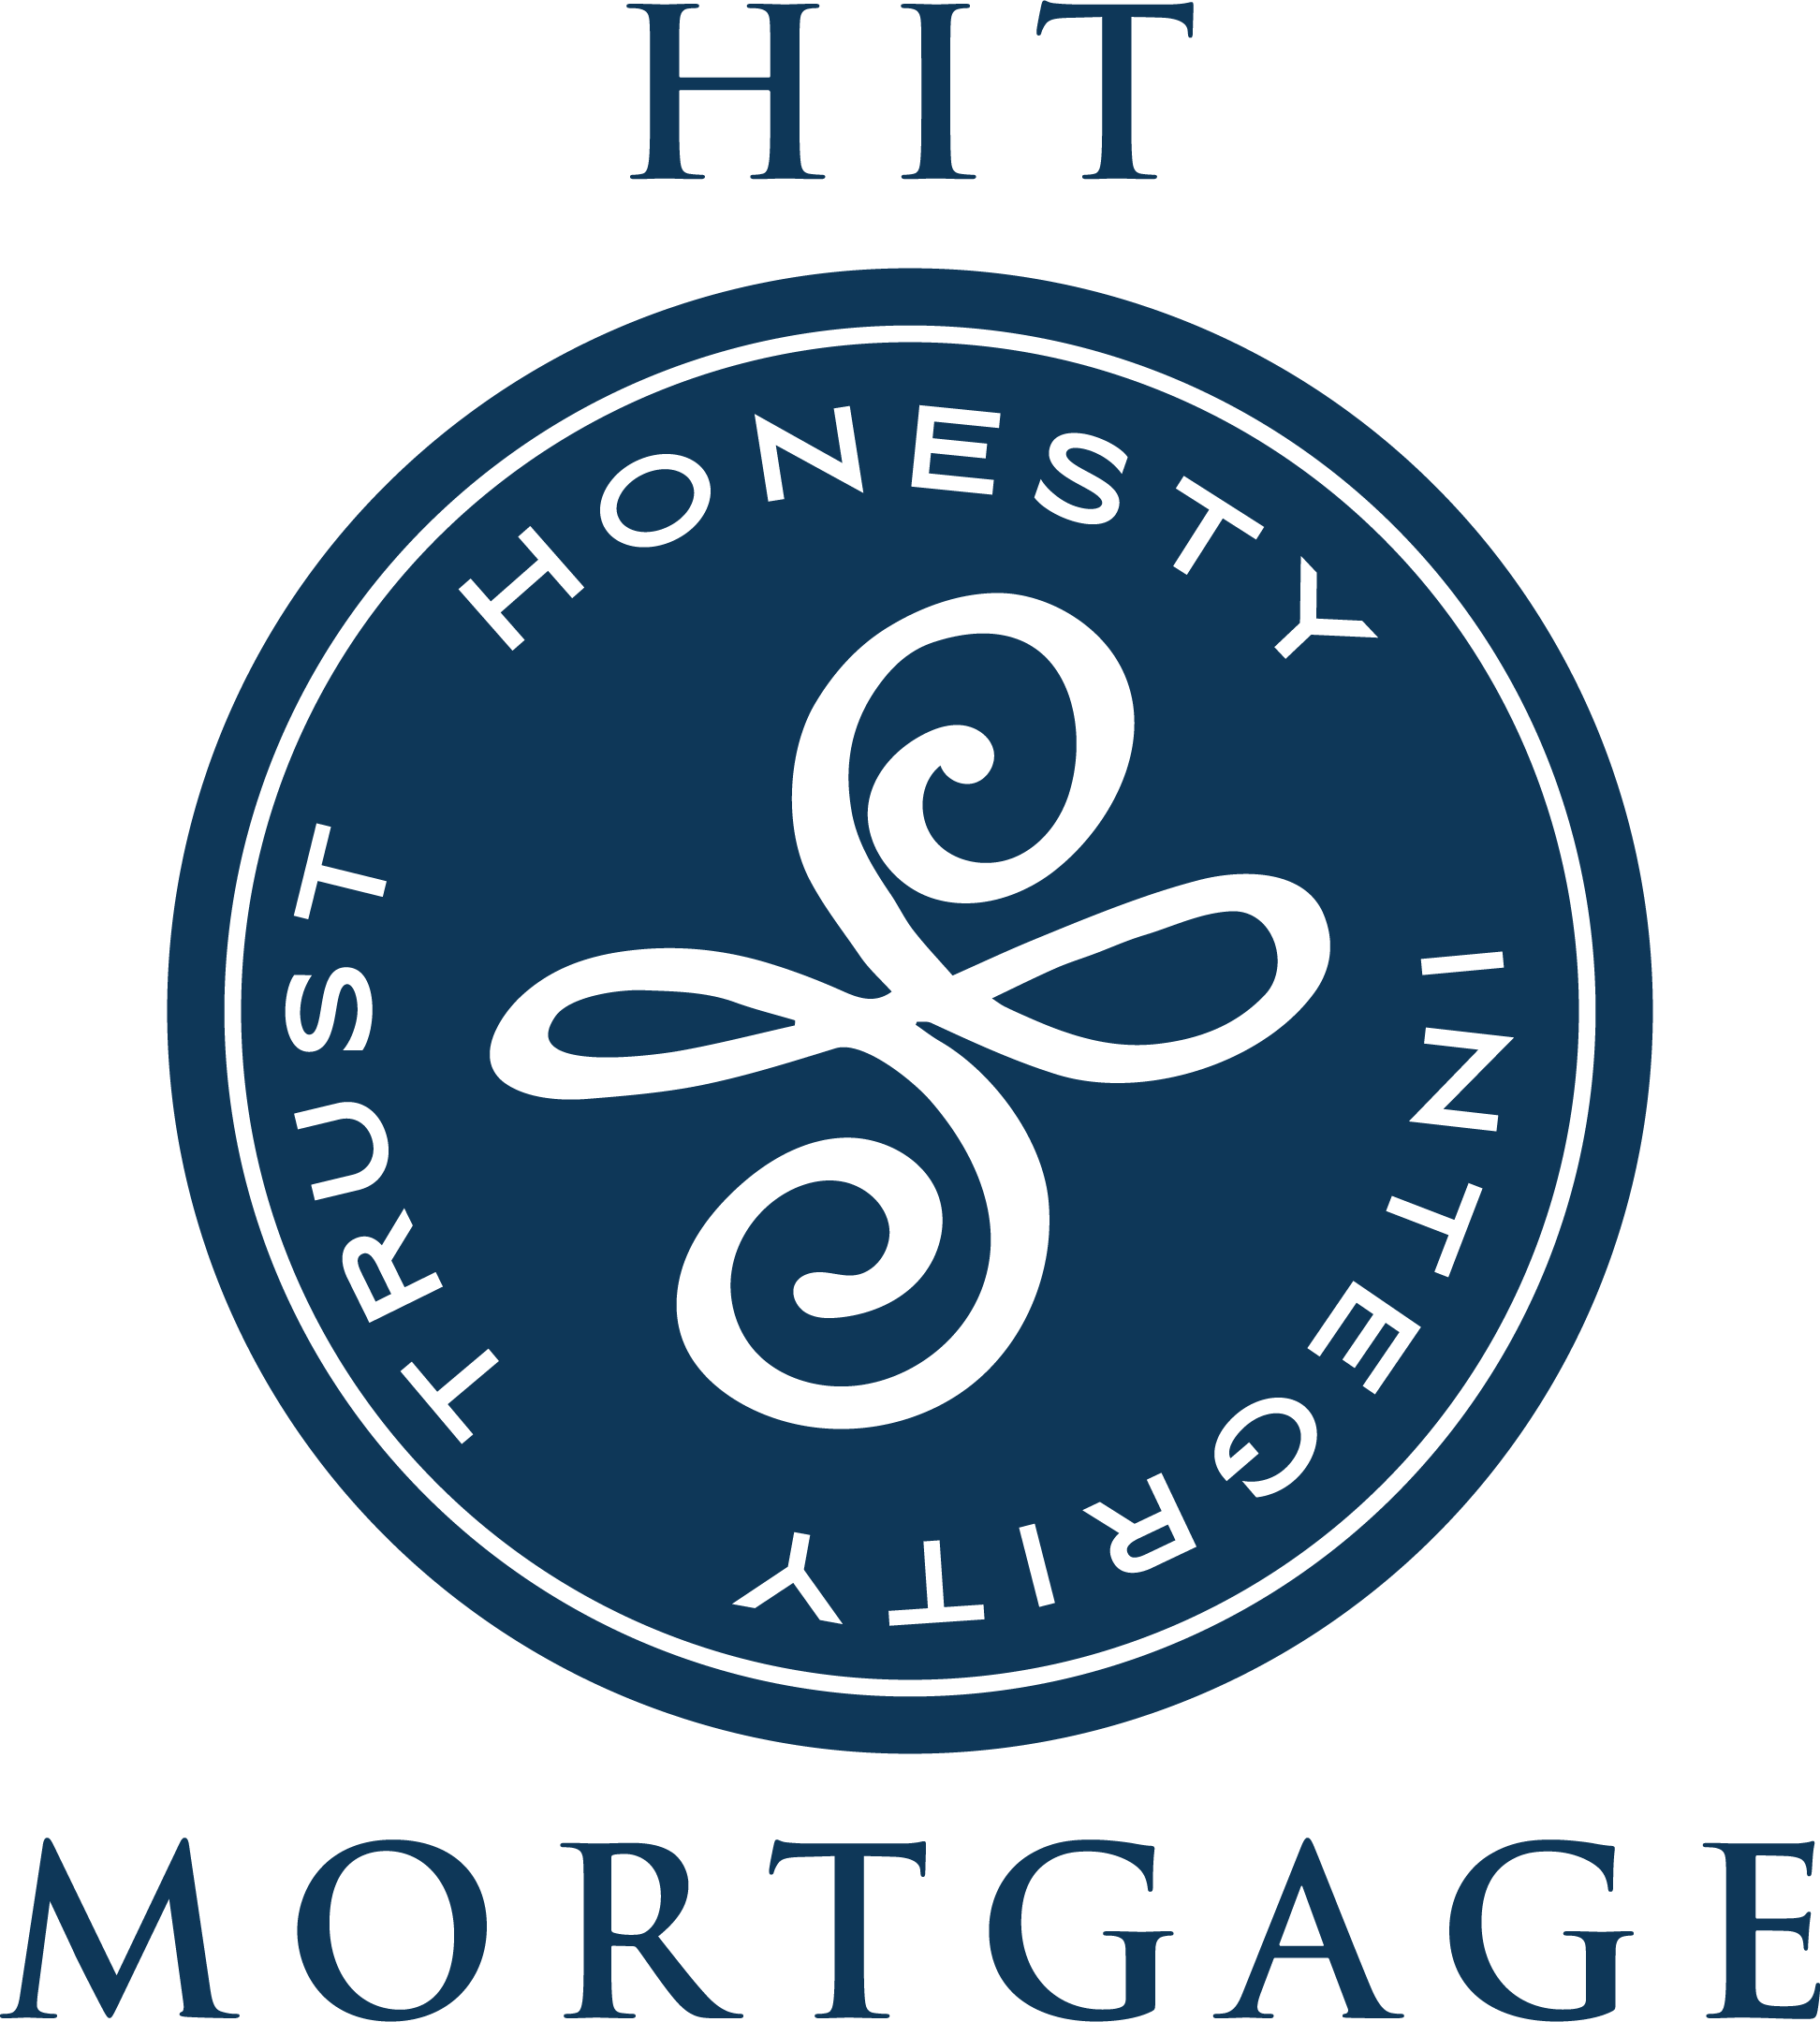 Monica Gries | Hit Mortgage